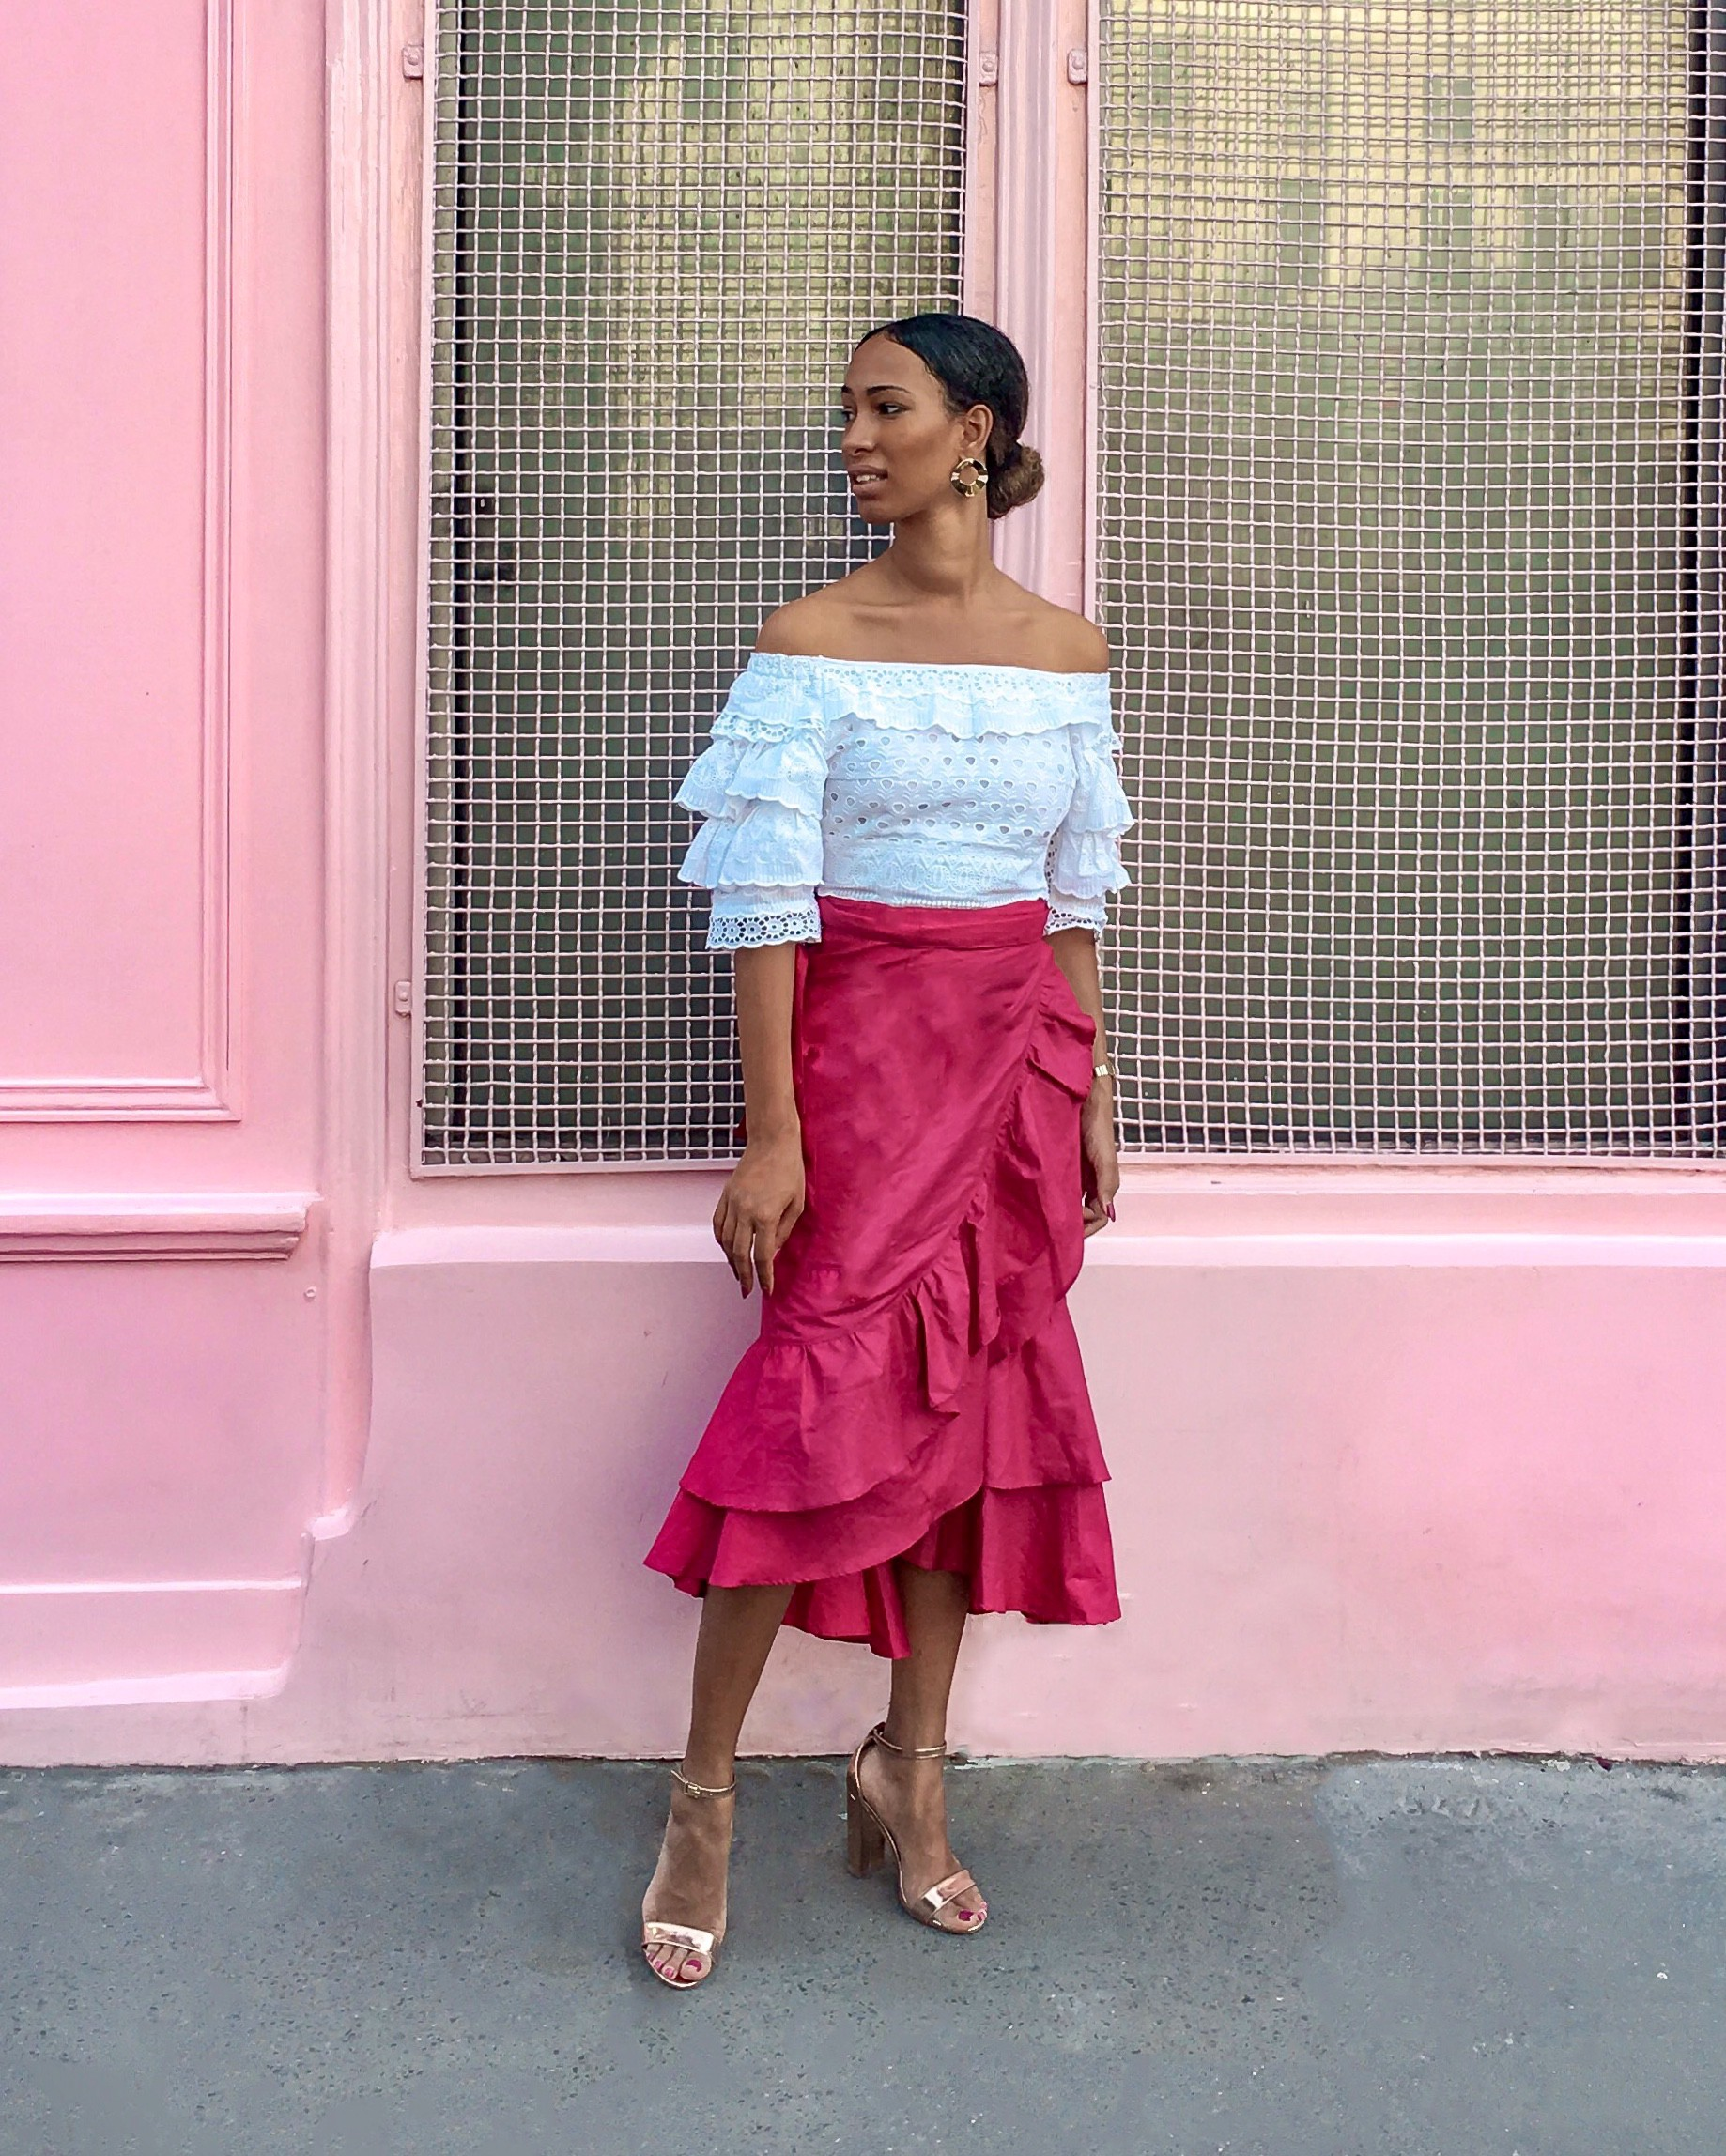 Woman wearing pink skirt with ruffles and white crop top